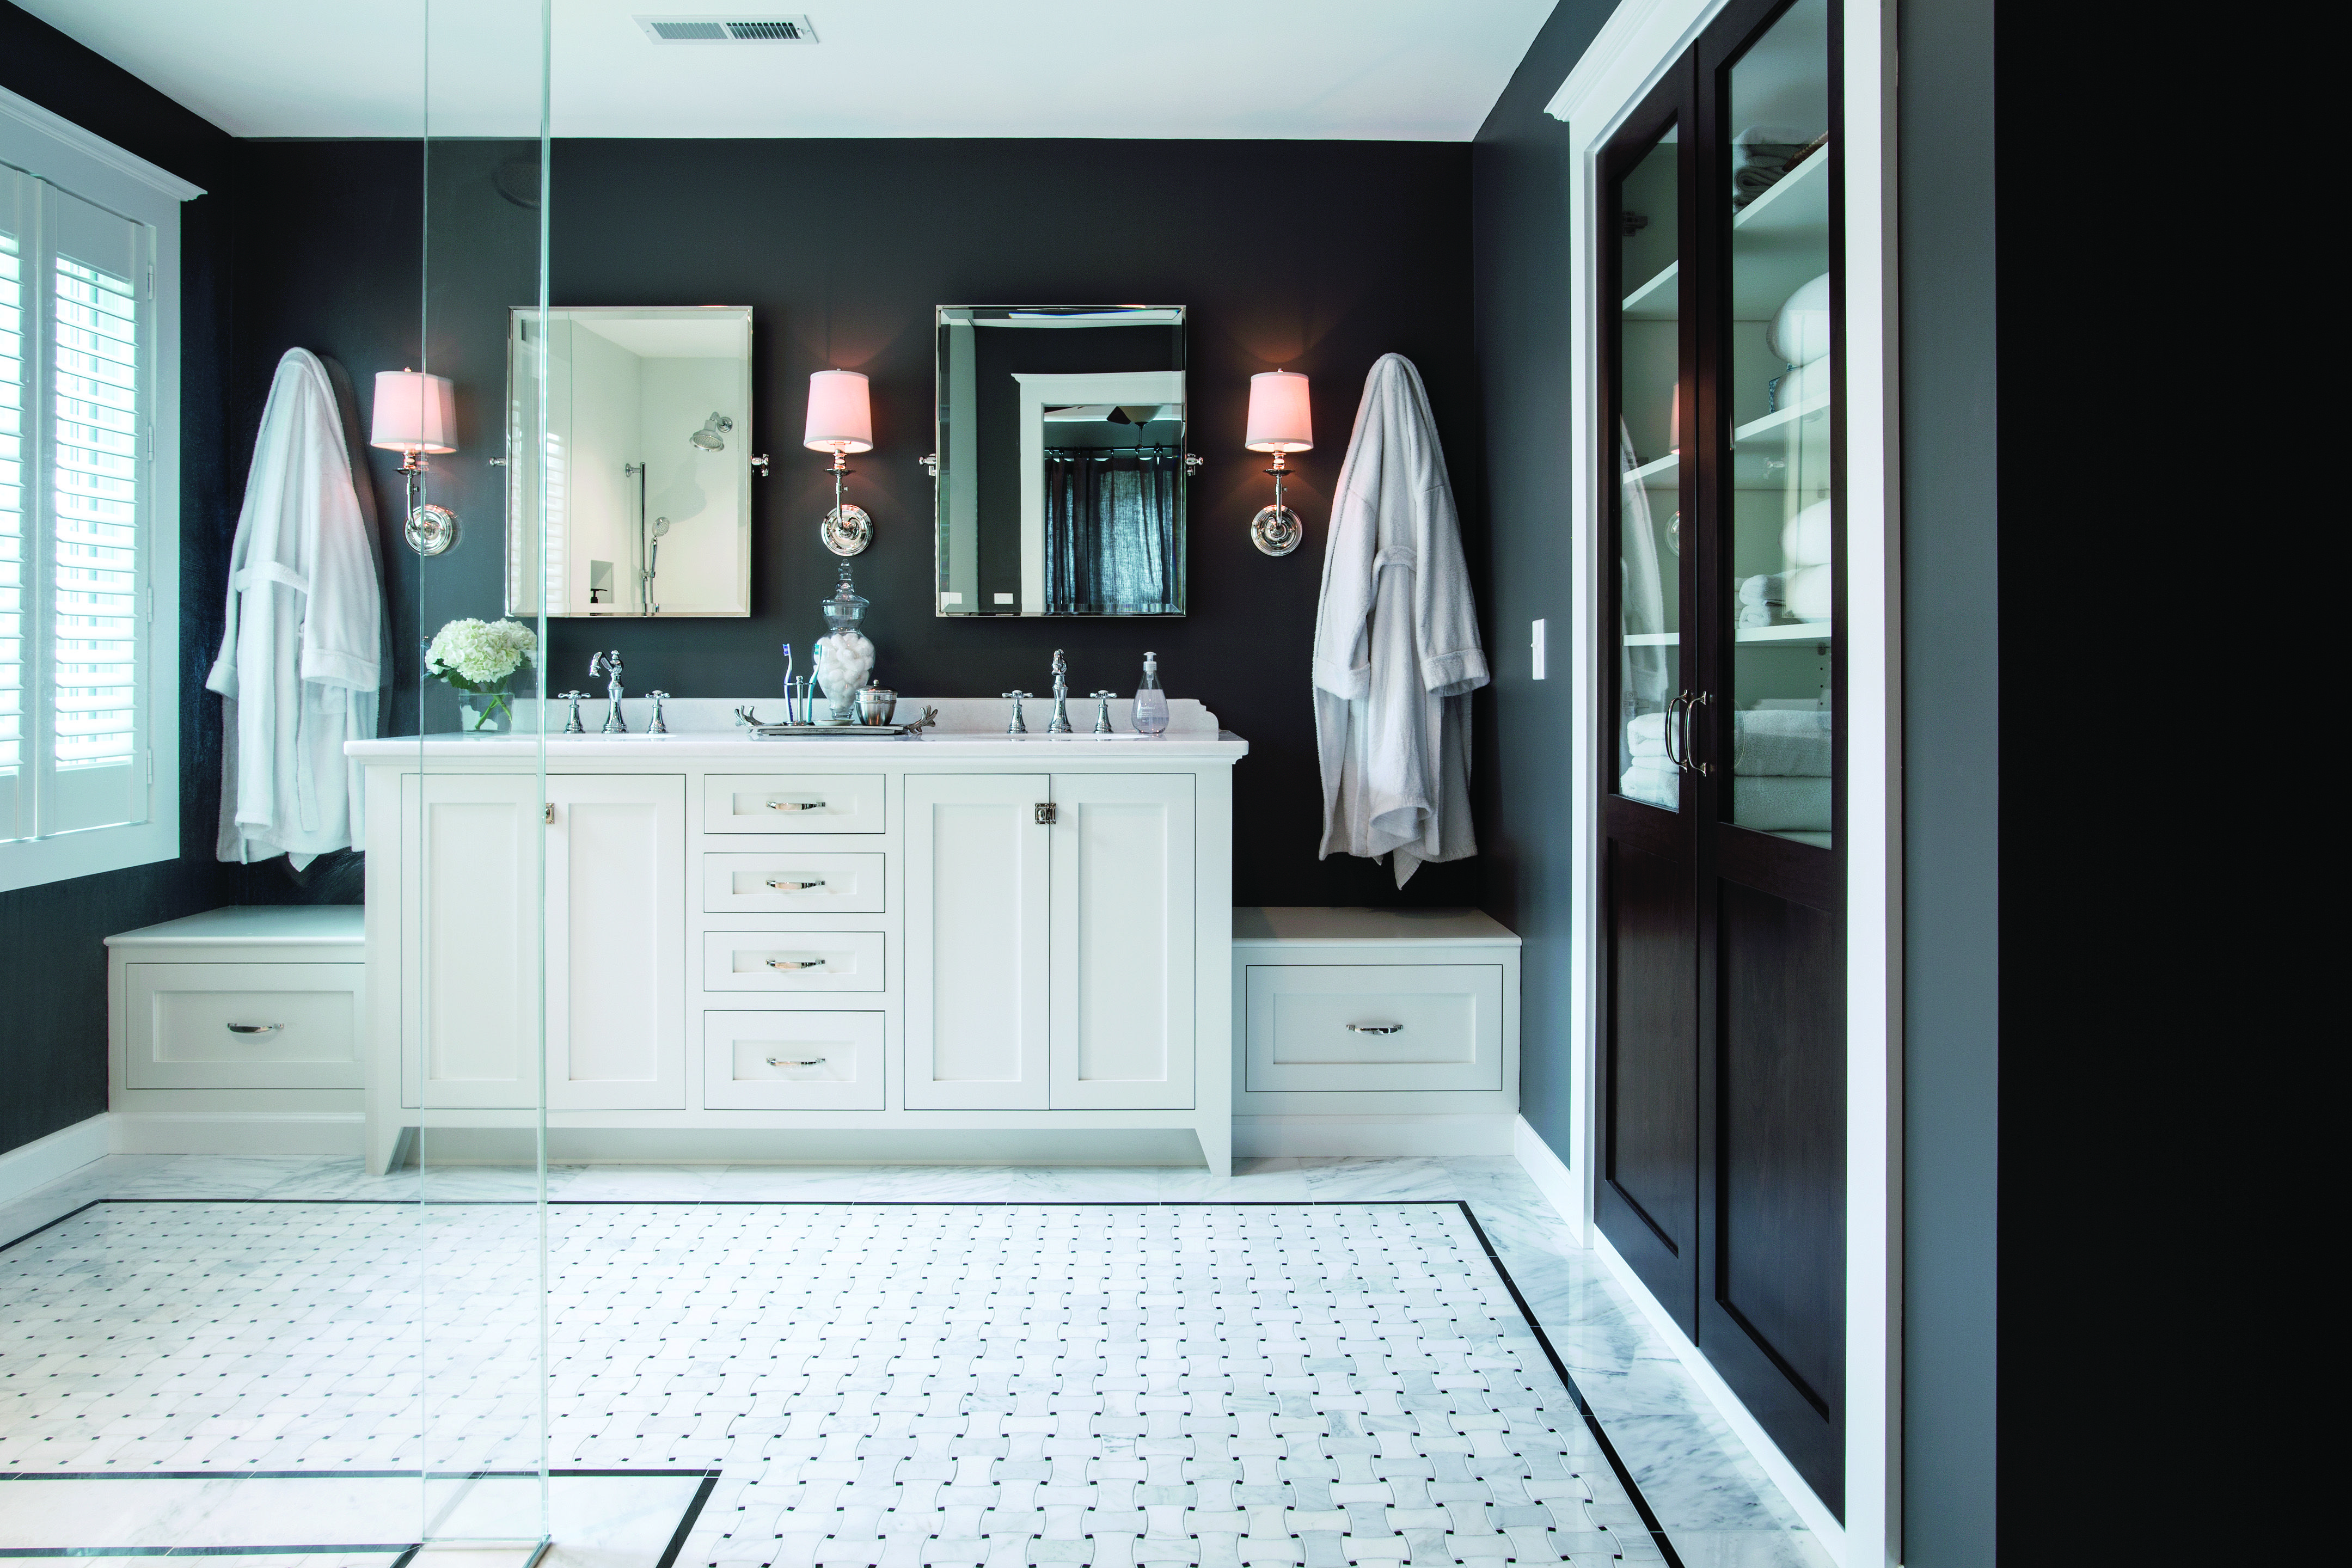 The white vanity and tile flooring with black granite accents keep